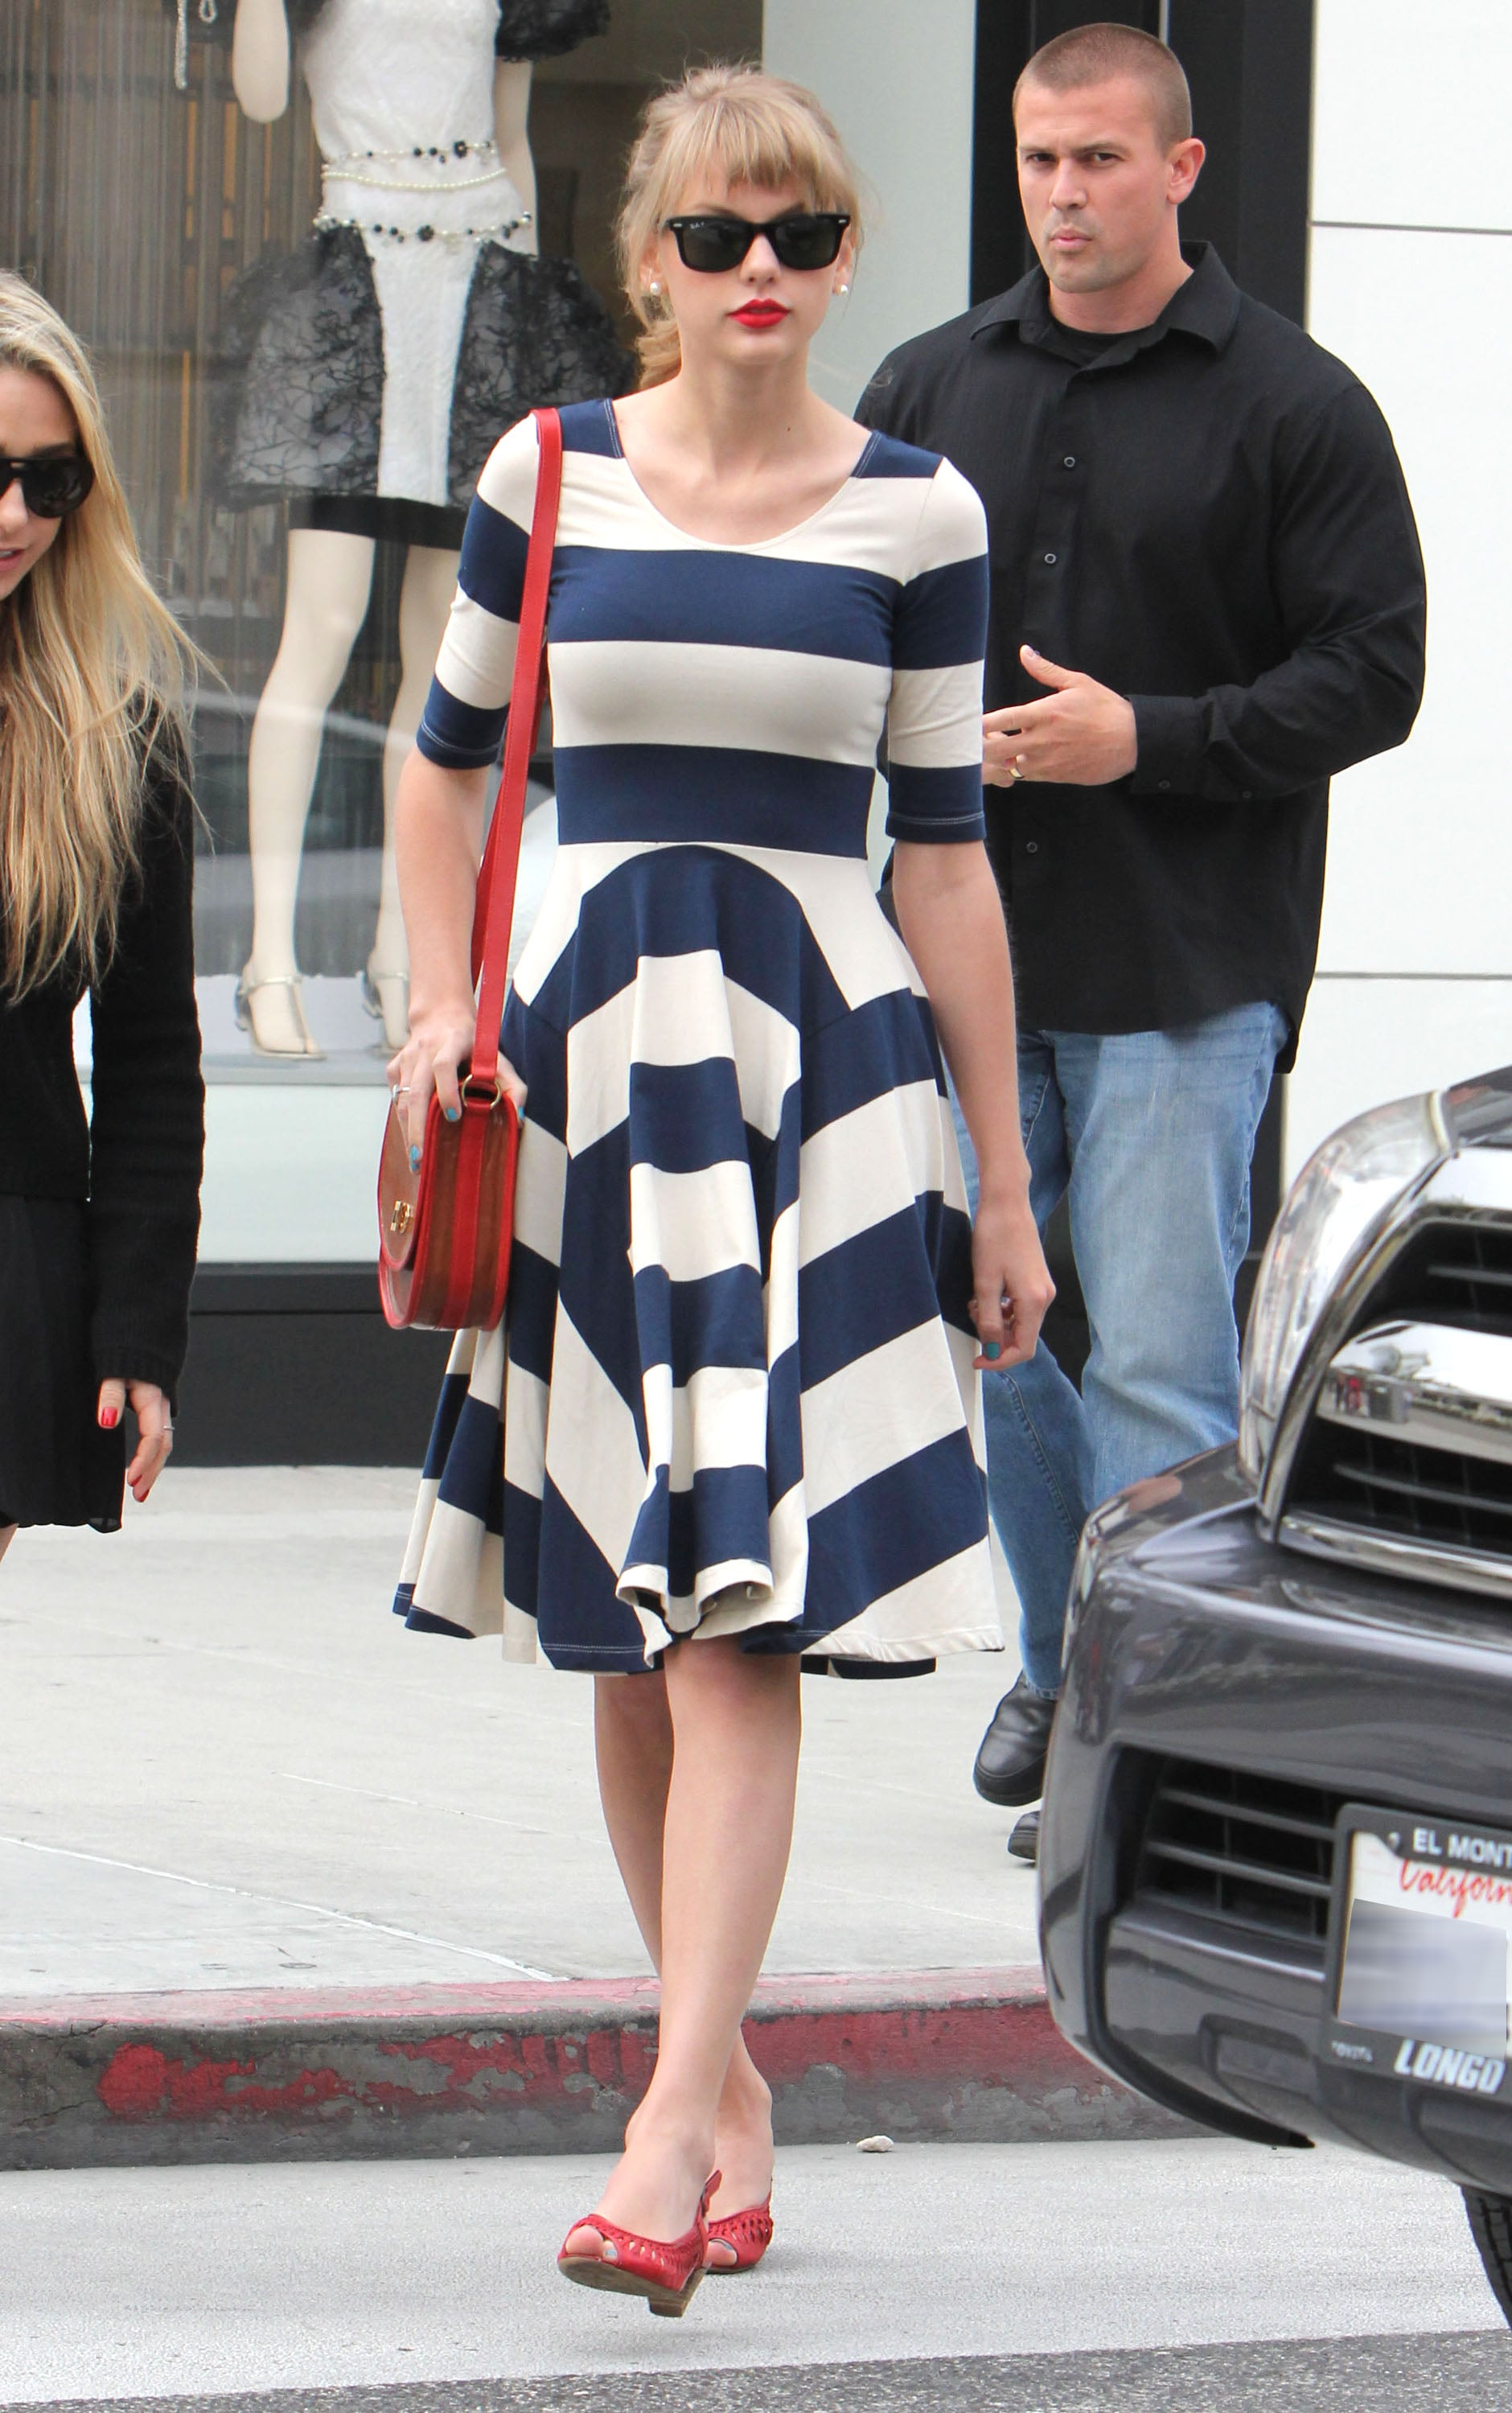 For a dressier vibe, start with a navy-and-white striped dress, then throw in lots of red via a bag, sandals, and lips à la Taylor Swift.